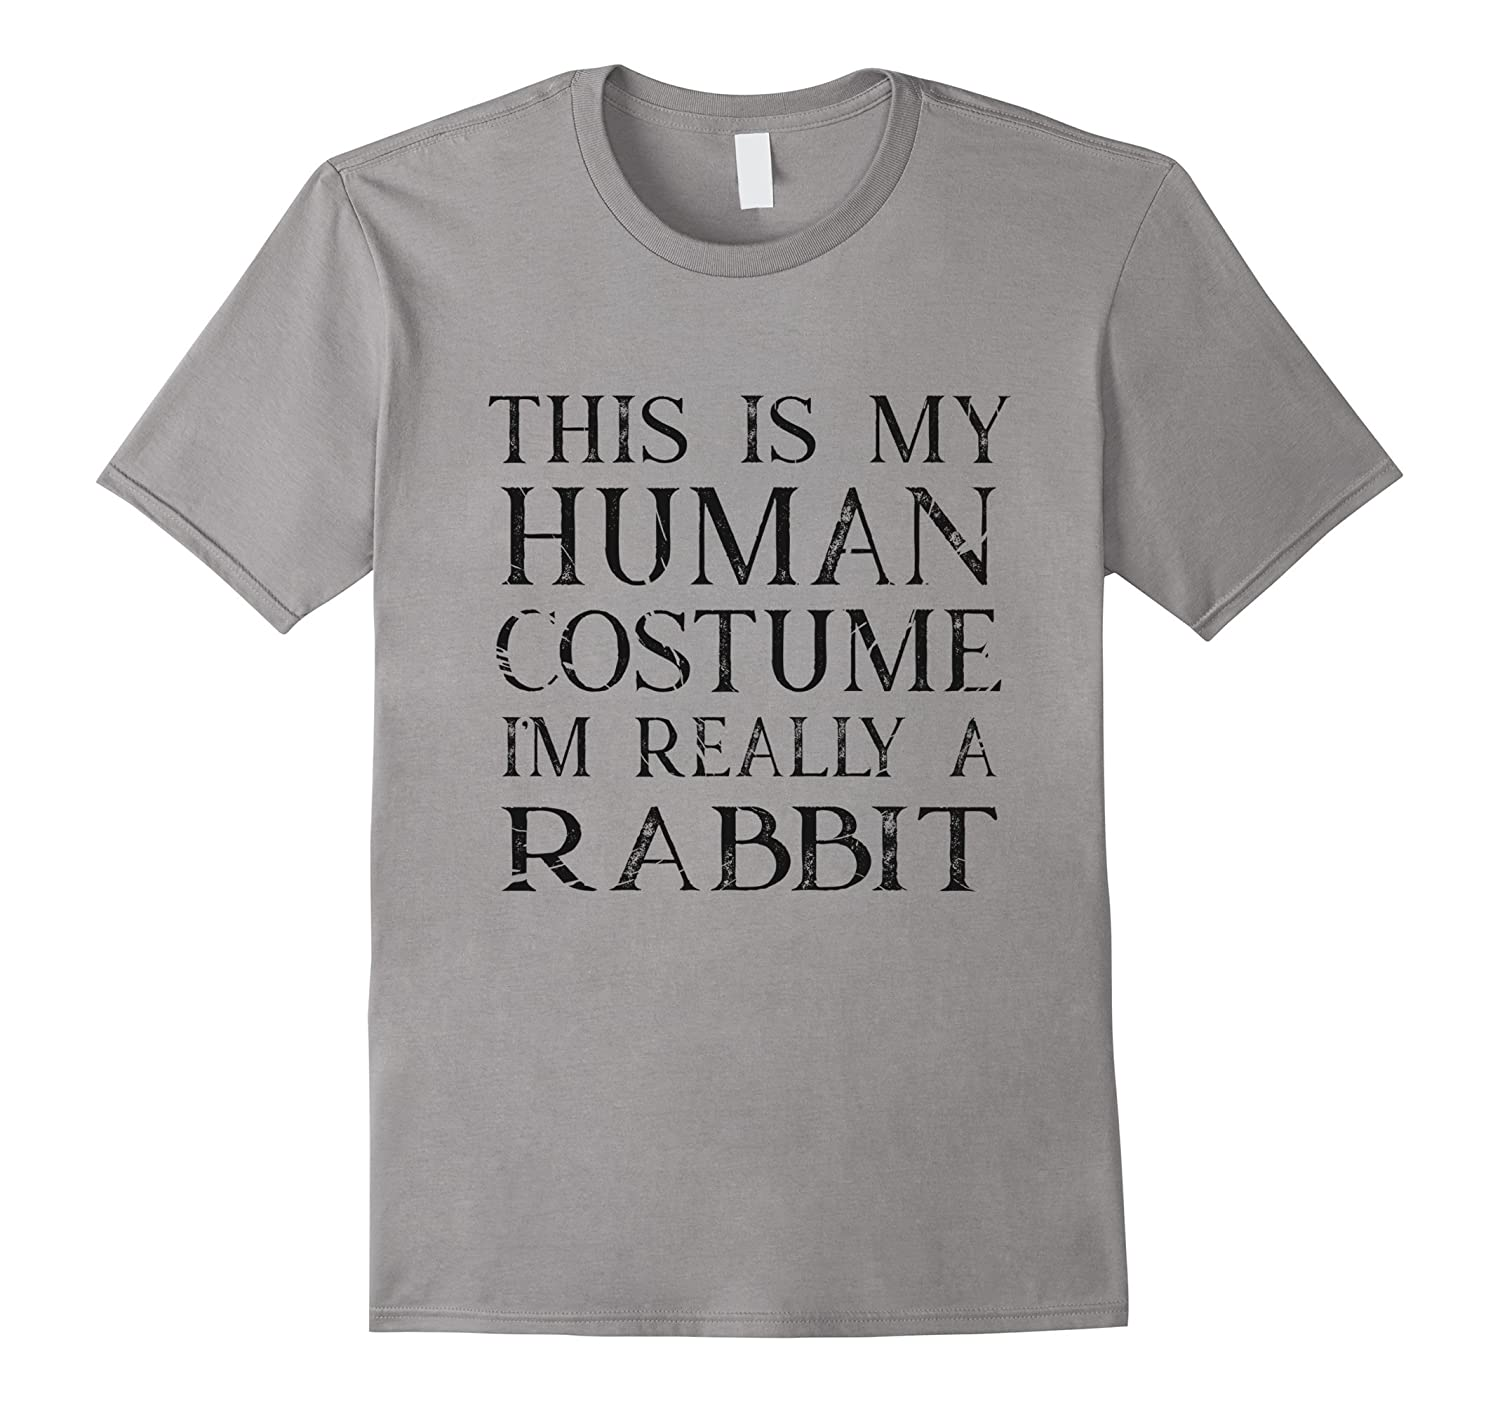 Im really a rabbit human costume halloween shirt-TJ